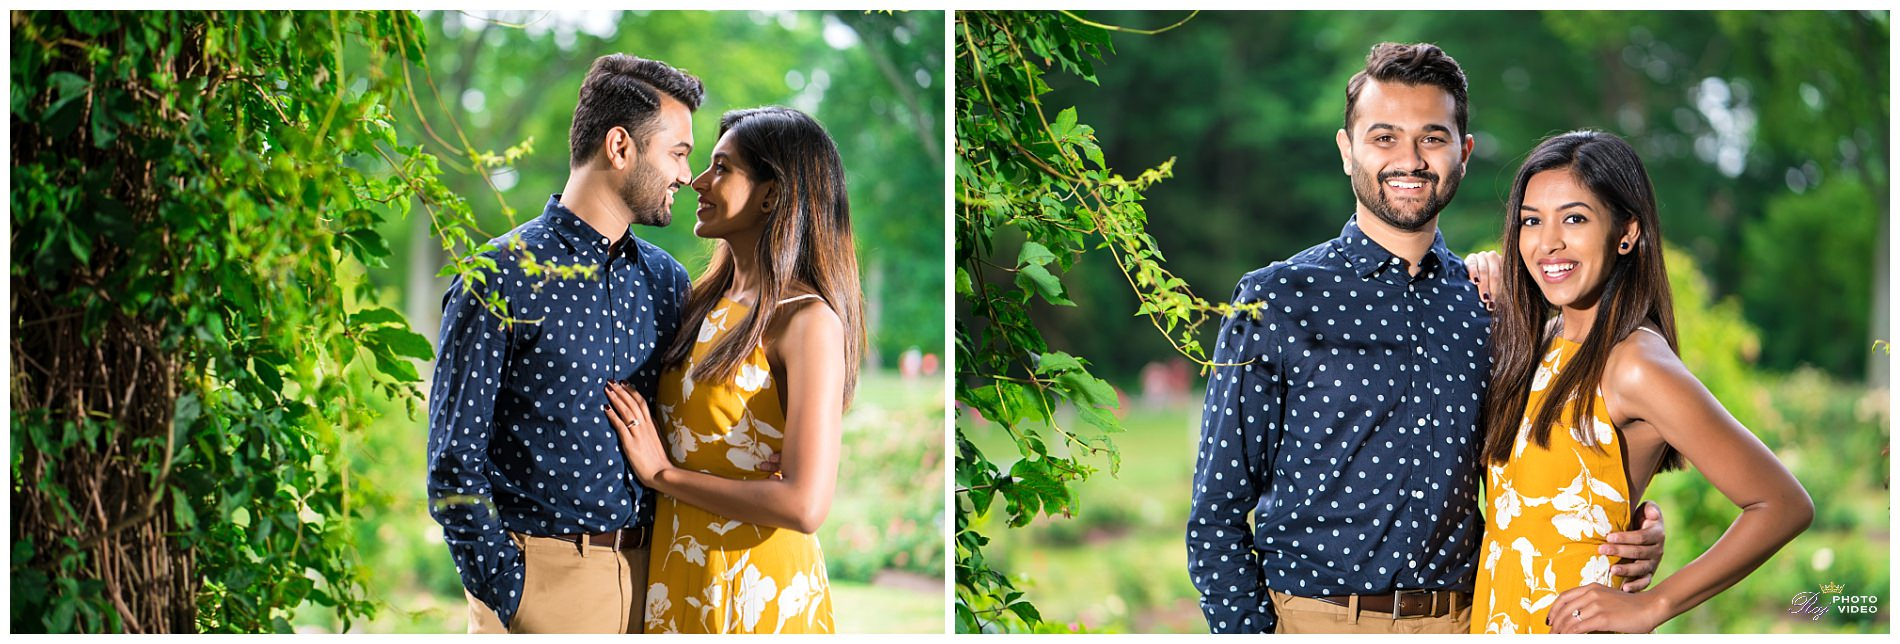 Elizabeth-Park-Rose-Garden-Hartford-CT-Engagement-Shoot-Pratiti-Suraj-12.jpg